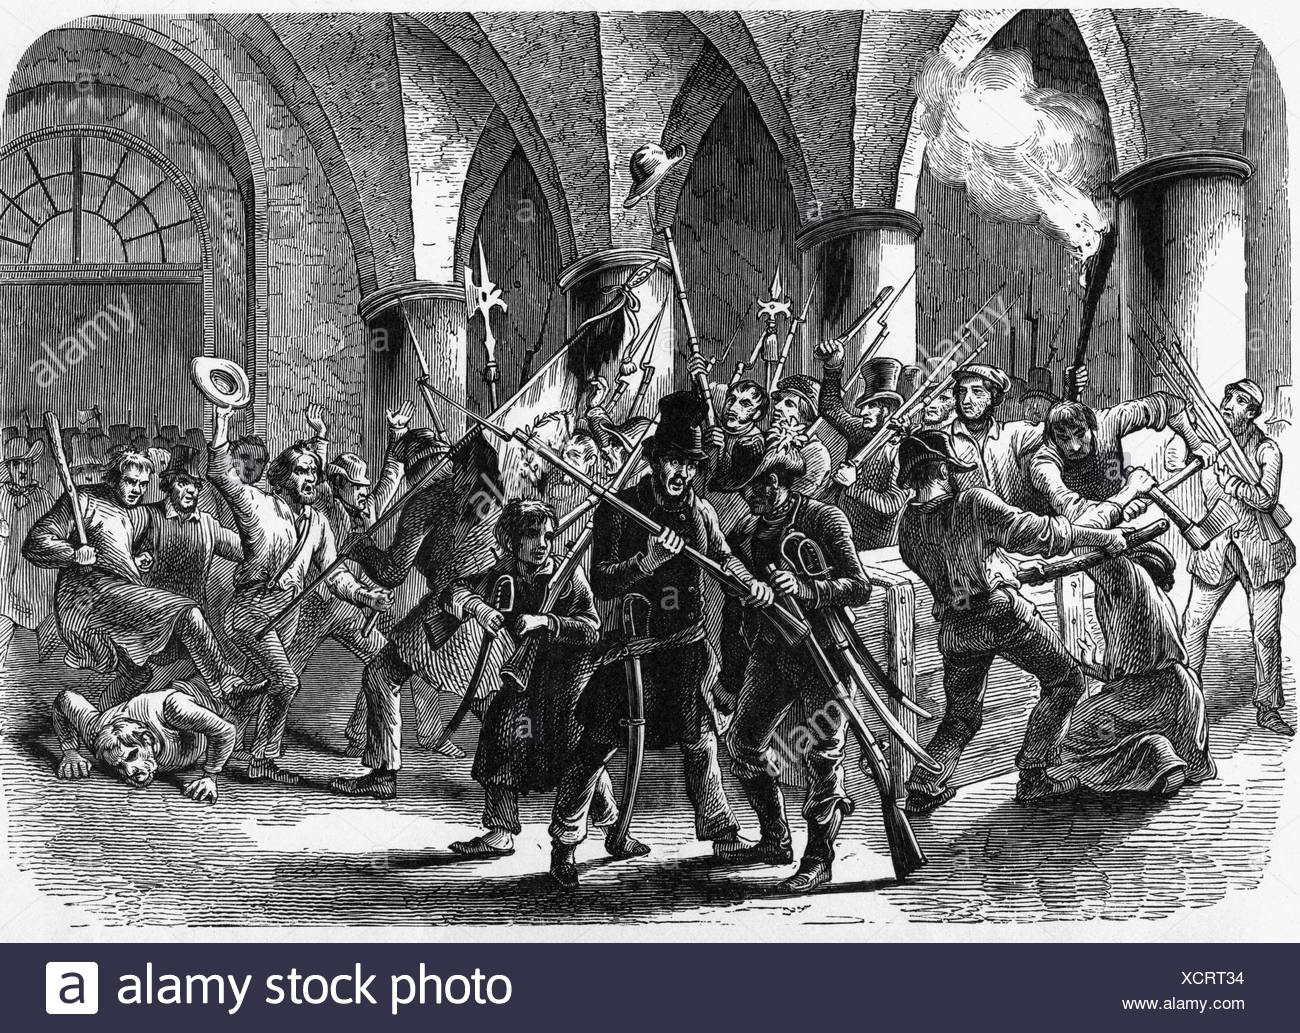 events, revolutions 1848 - 1849, Germany, Prussia, storming of the Berlin armoury, 14.6.1848, wood engraving, 19th century, Revolution, looting, weapons, revolutionaries, people, historic, historical, Additional-Rights-Clearances-NA - Stock Image